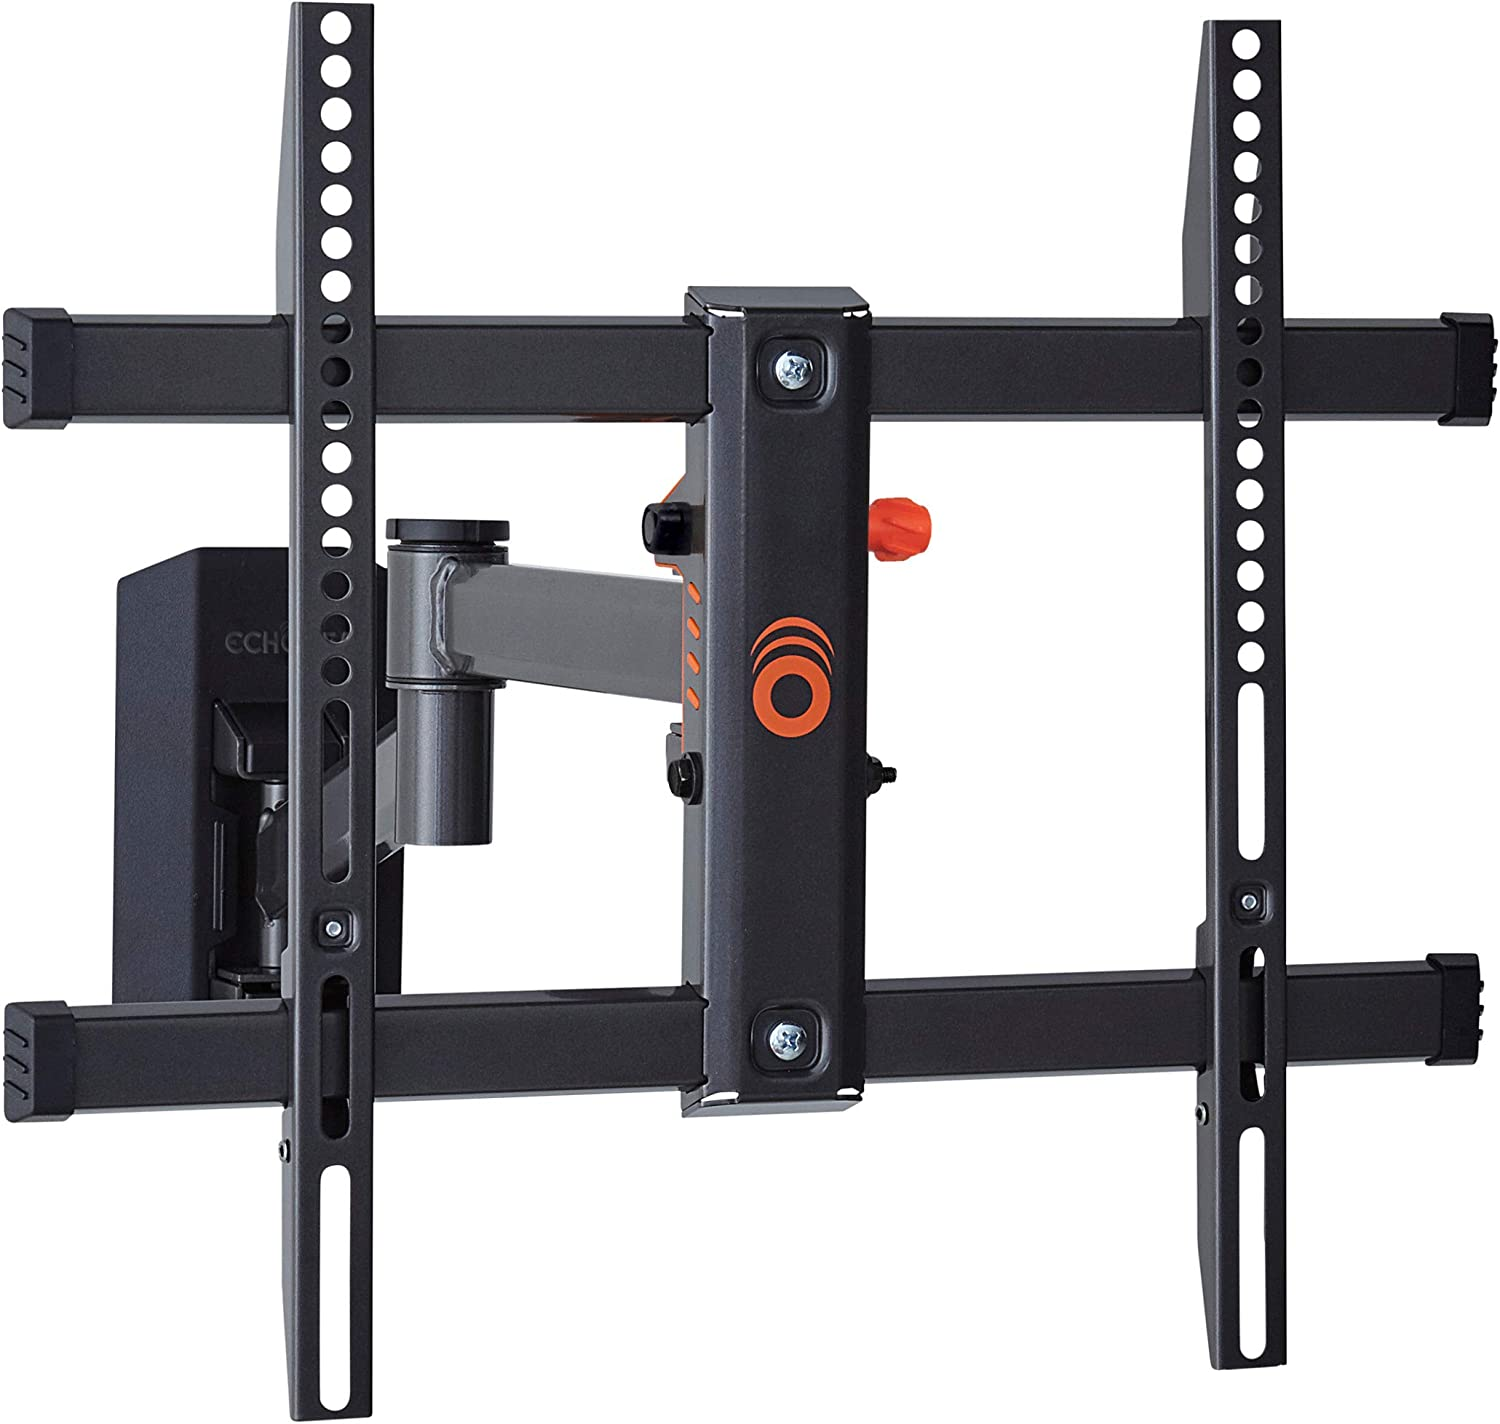 "ECHOGEAR Full Motion TV Wall Mount for TVs Up to 58"" - Smooth Extention, Swivel, Tilt - Wall Template for Easy Install On 1 Stud - After Install Level & Hide Cables with Built-in Cable Management"